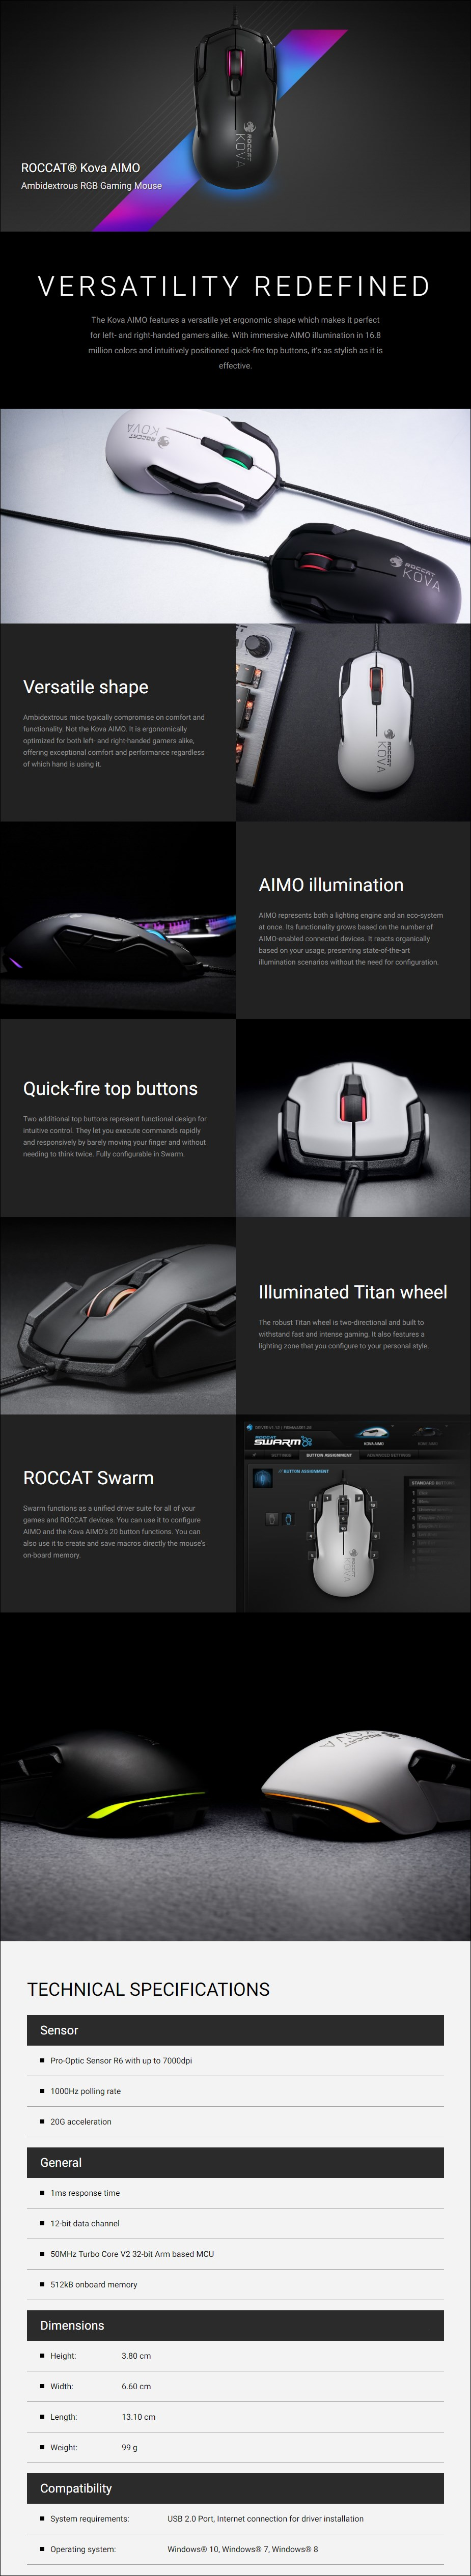 Roccat Kova AIMO Optical Gaming Mouse - Overview  1